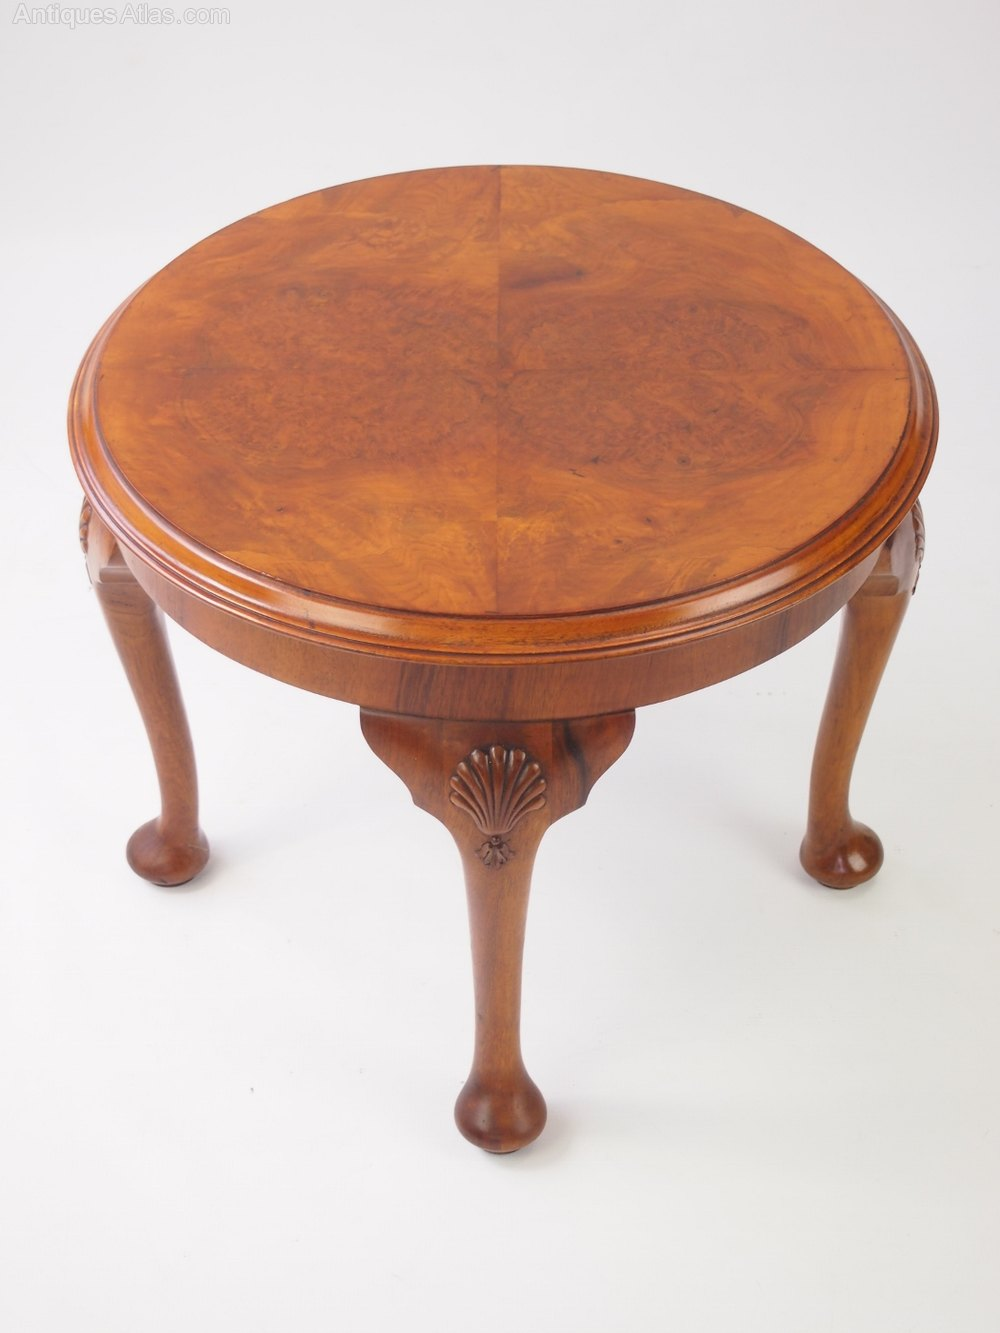 Small Walnut Coffee Table Circa 1920s Antiques Atlas